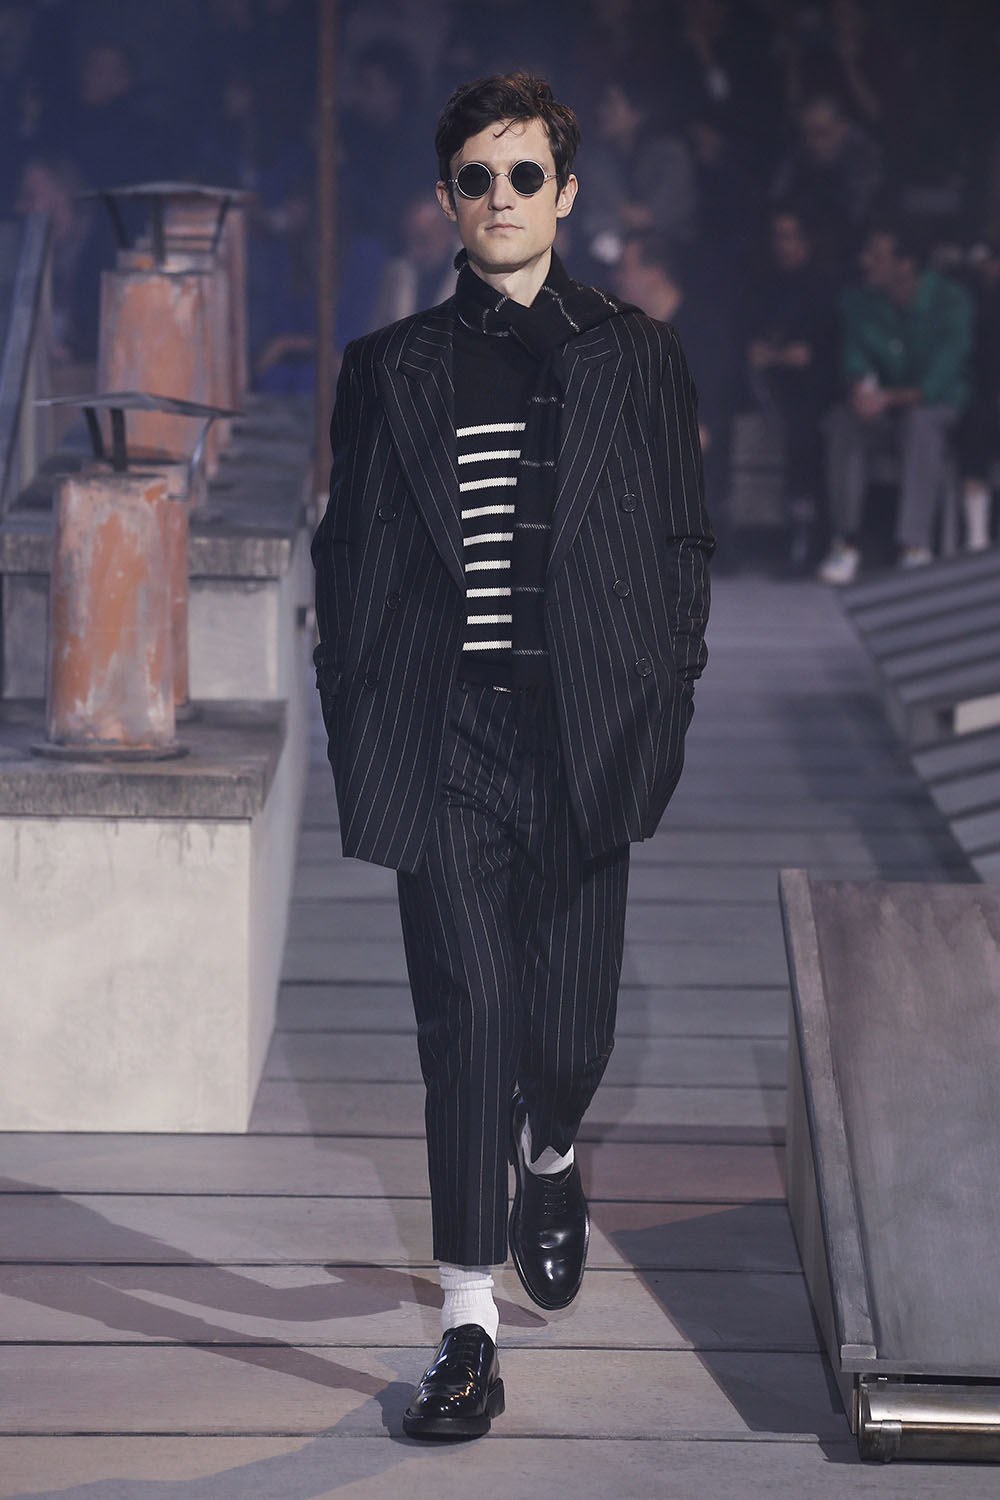 AMI ALEXANDRE MATUISSI FW18 PARIS MEN FASHION WEEK 17/01/2018